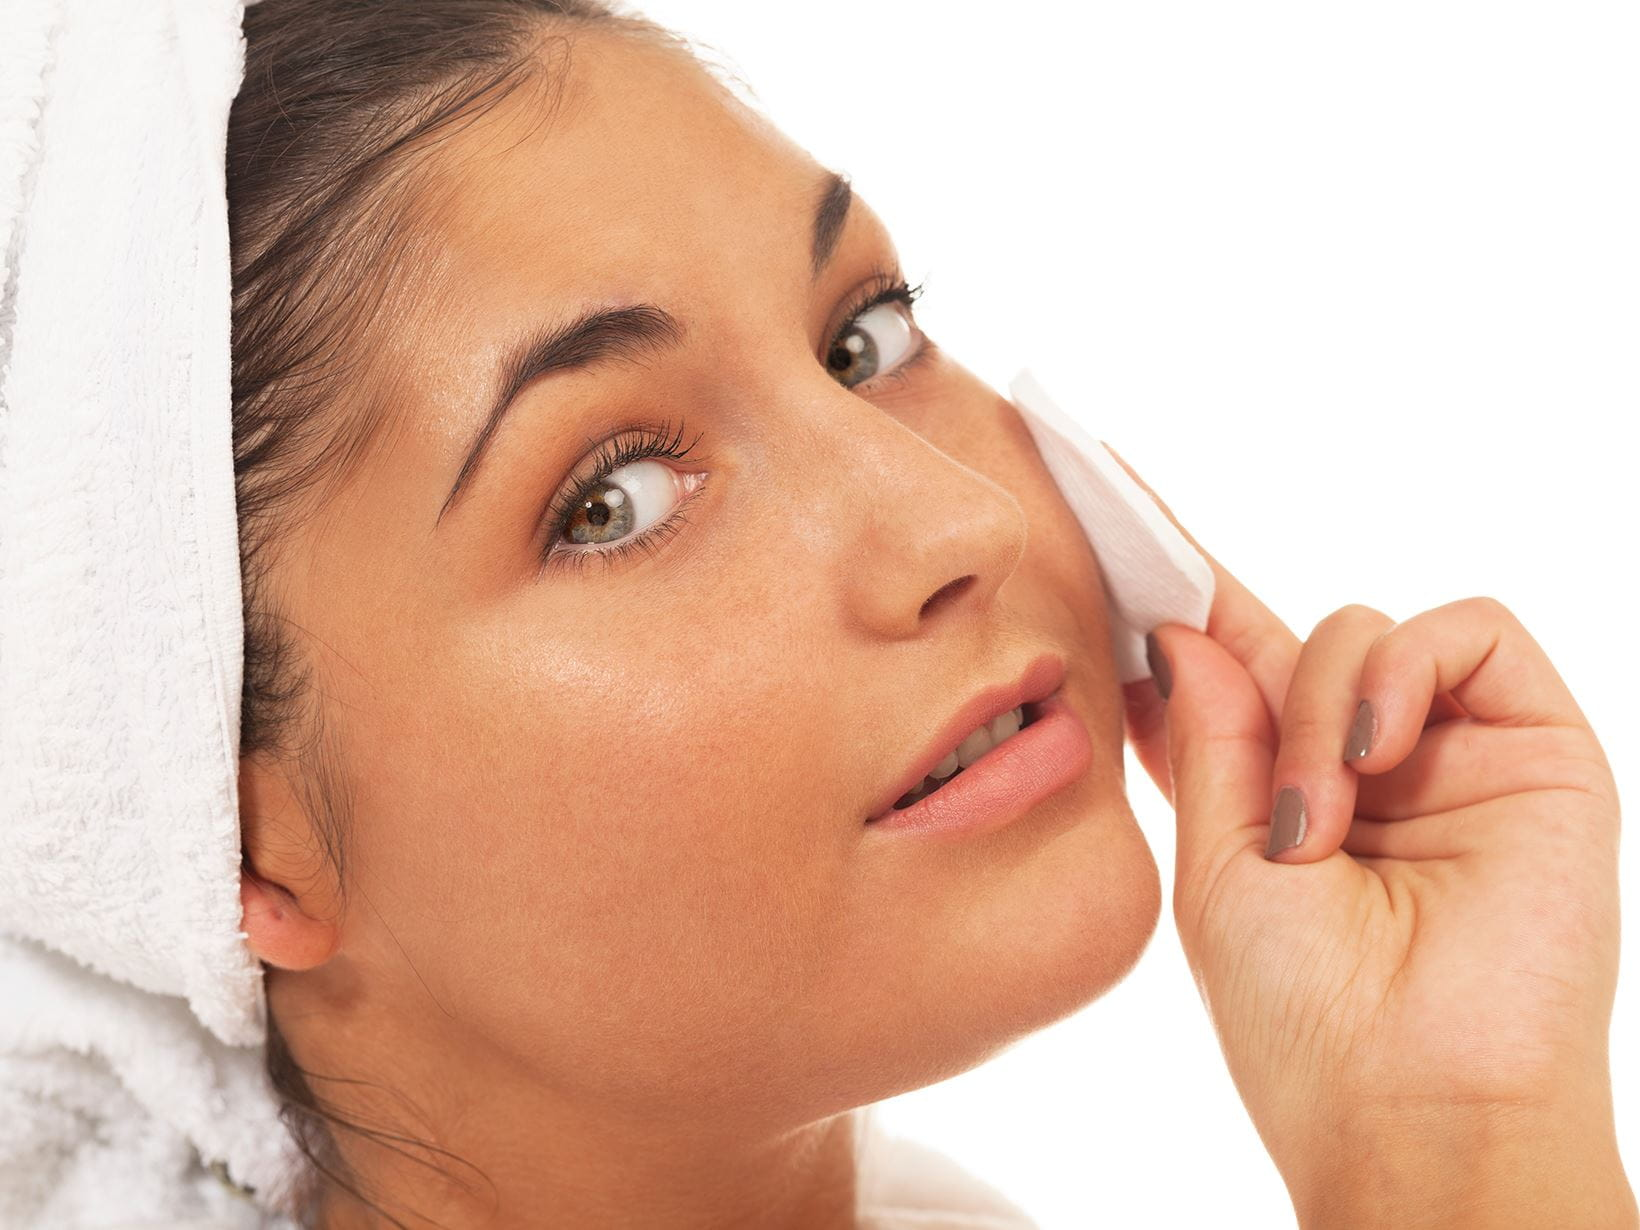 lady using cotton paid for double cleansing